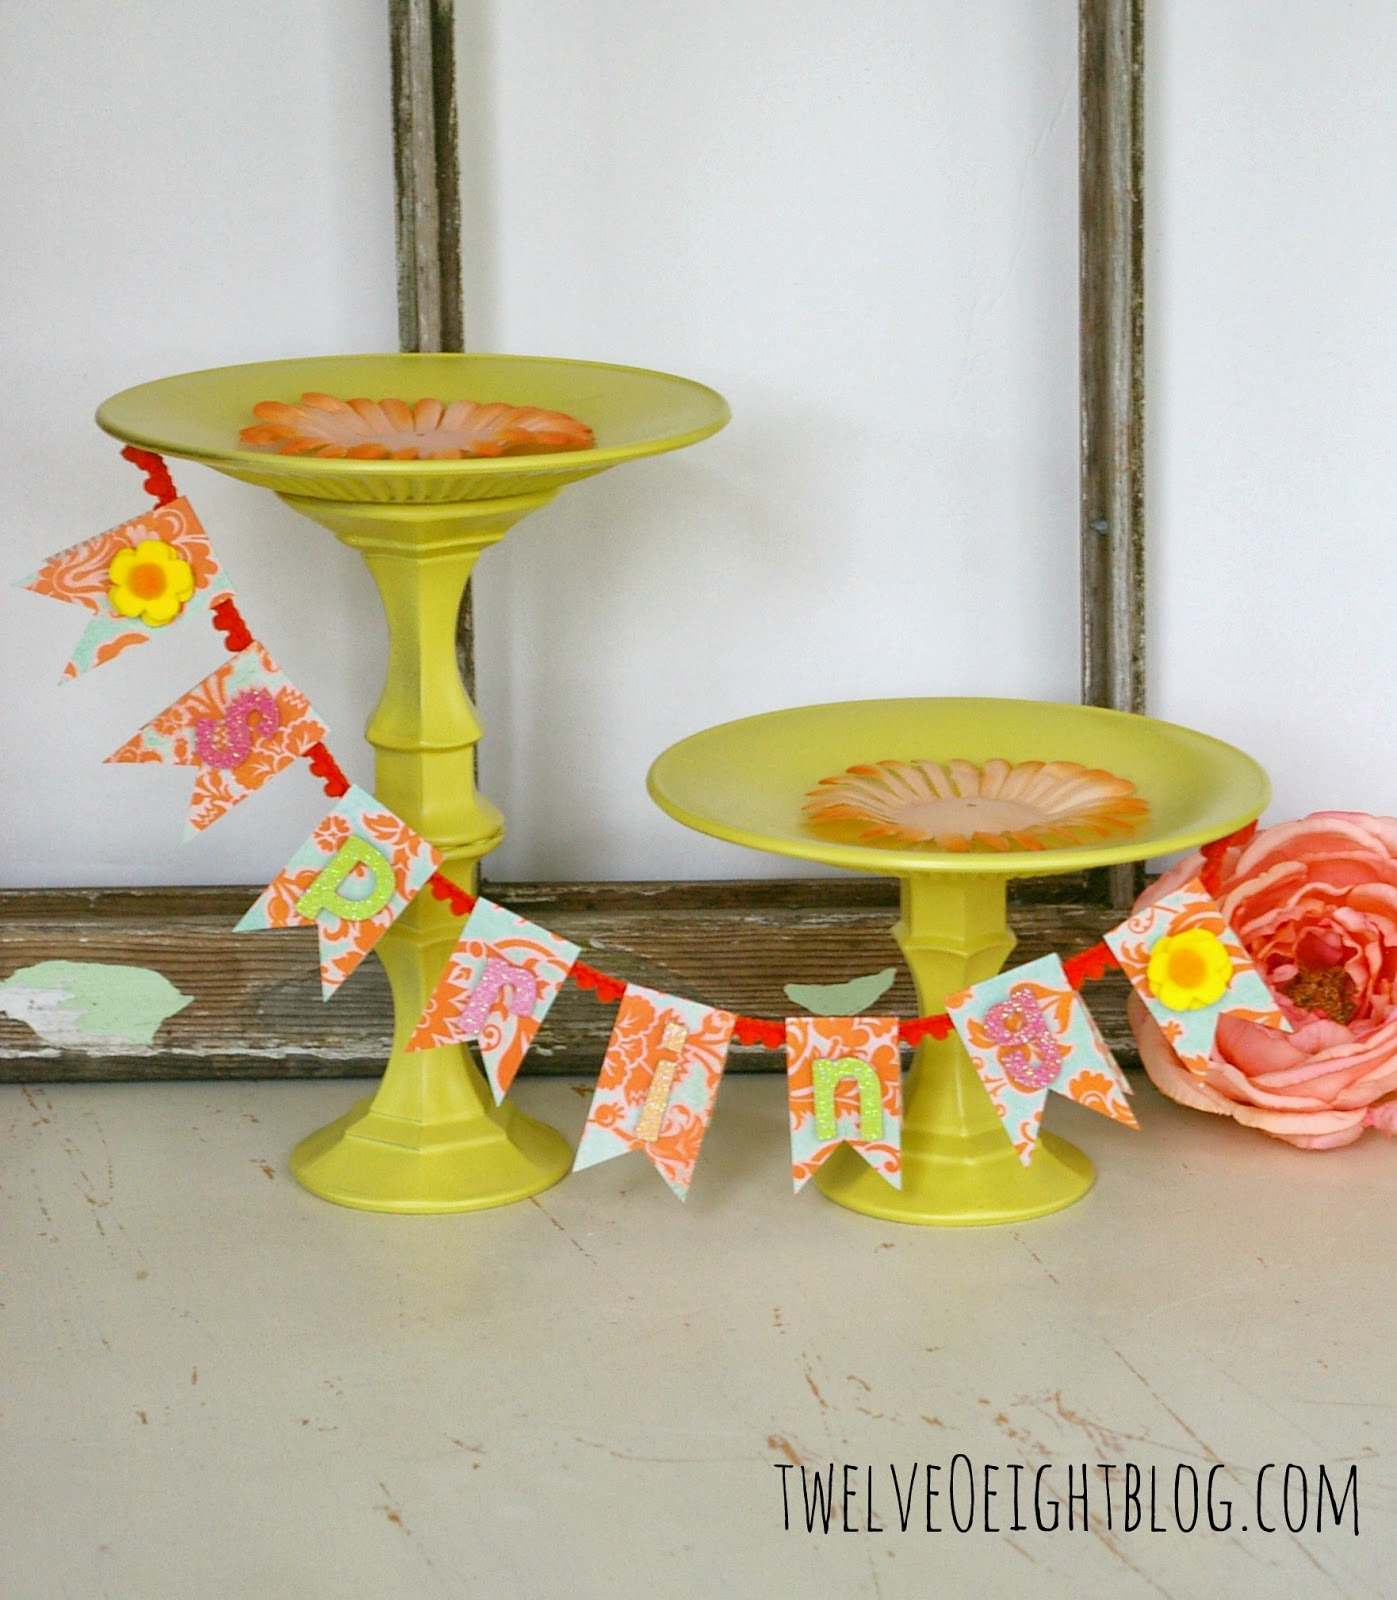 diy cake stands. Black Bedroom Furniture Sets. Home Design Ideas